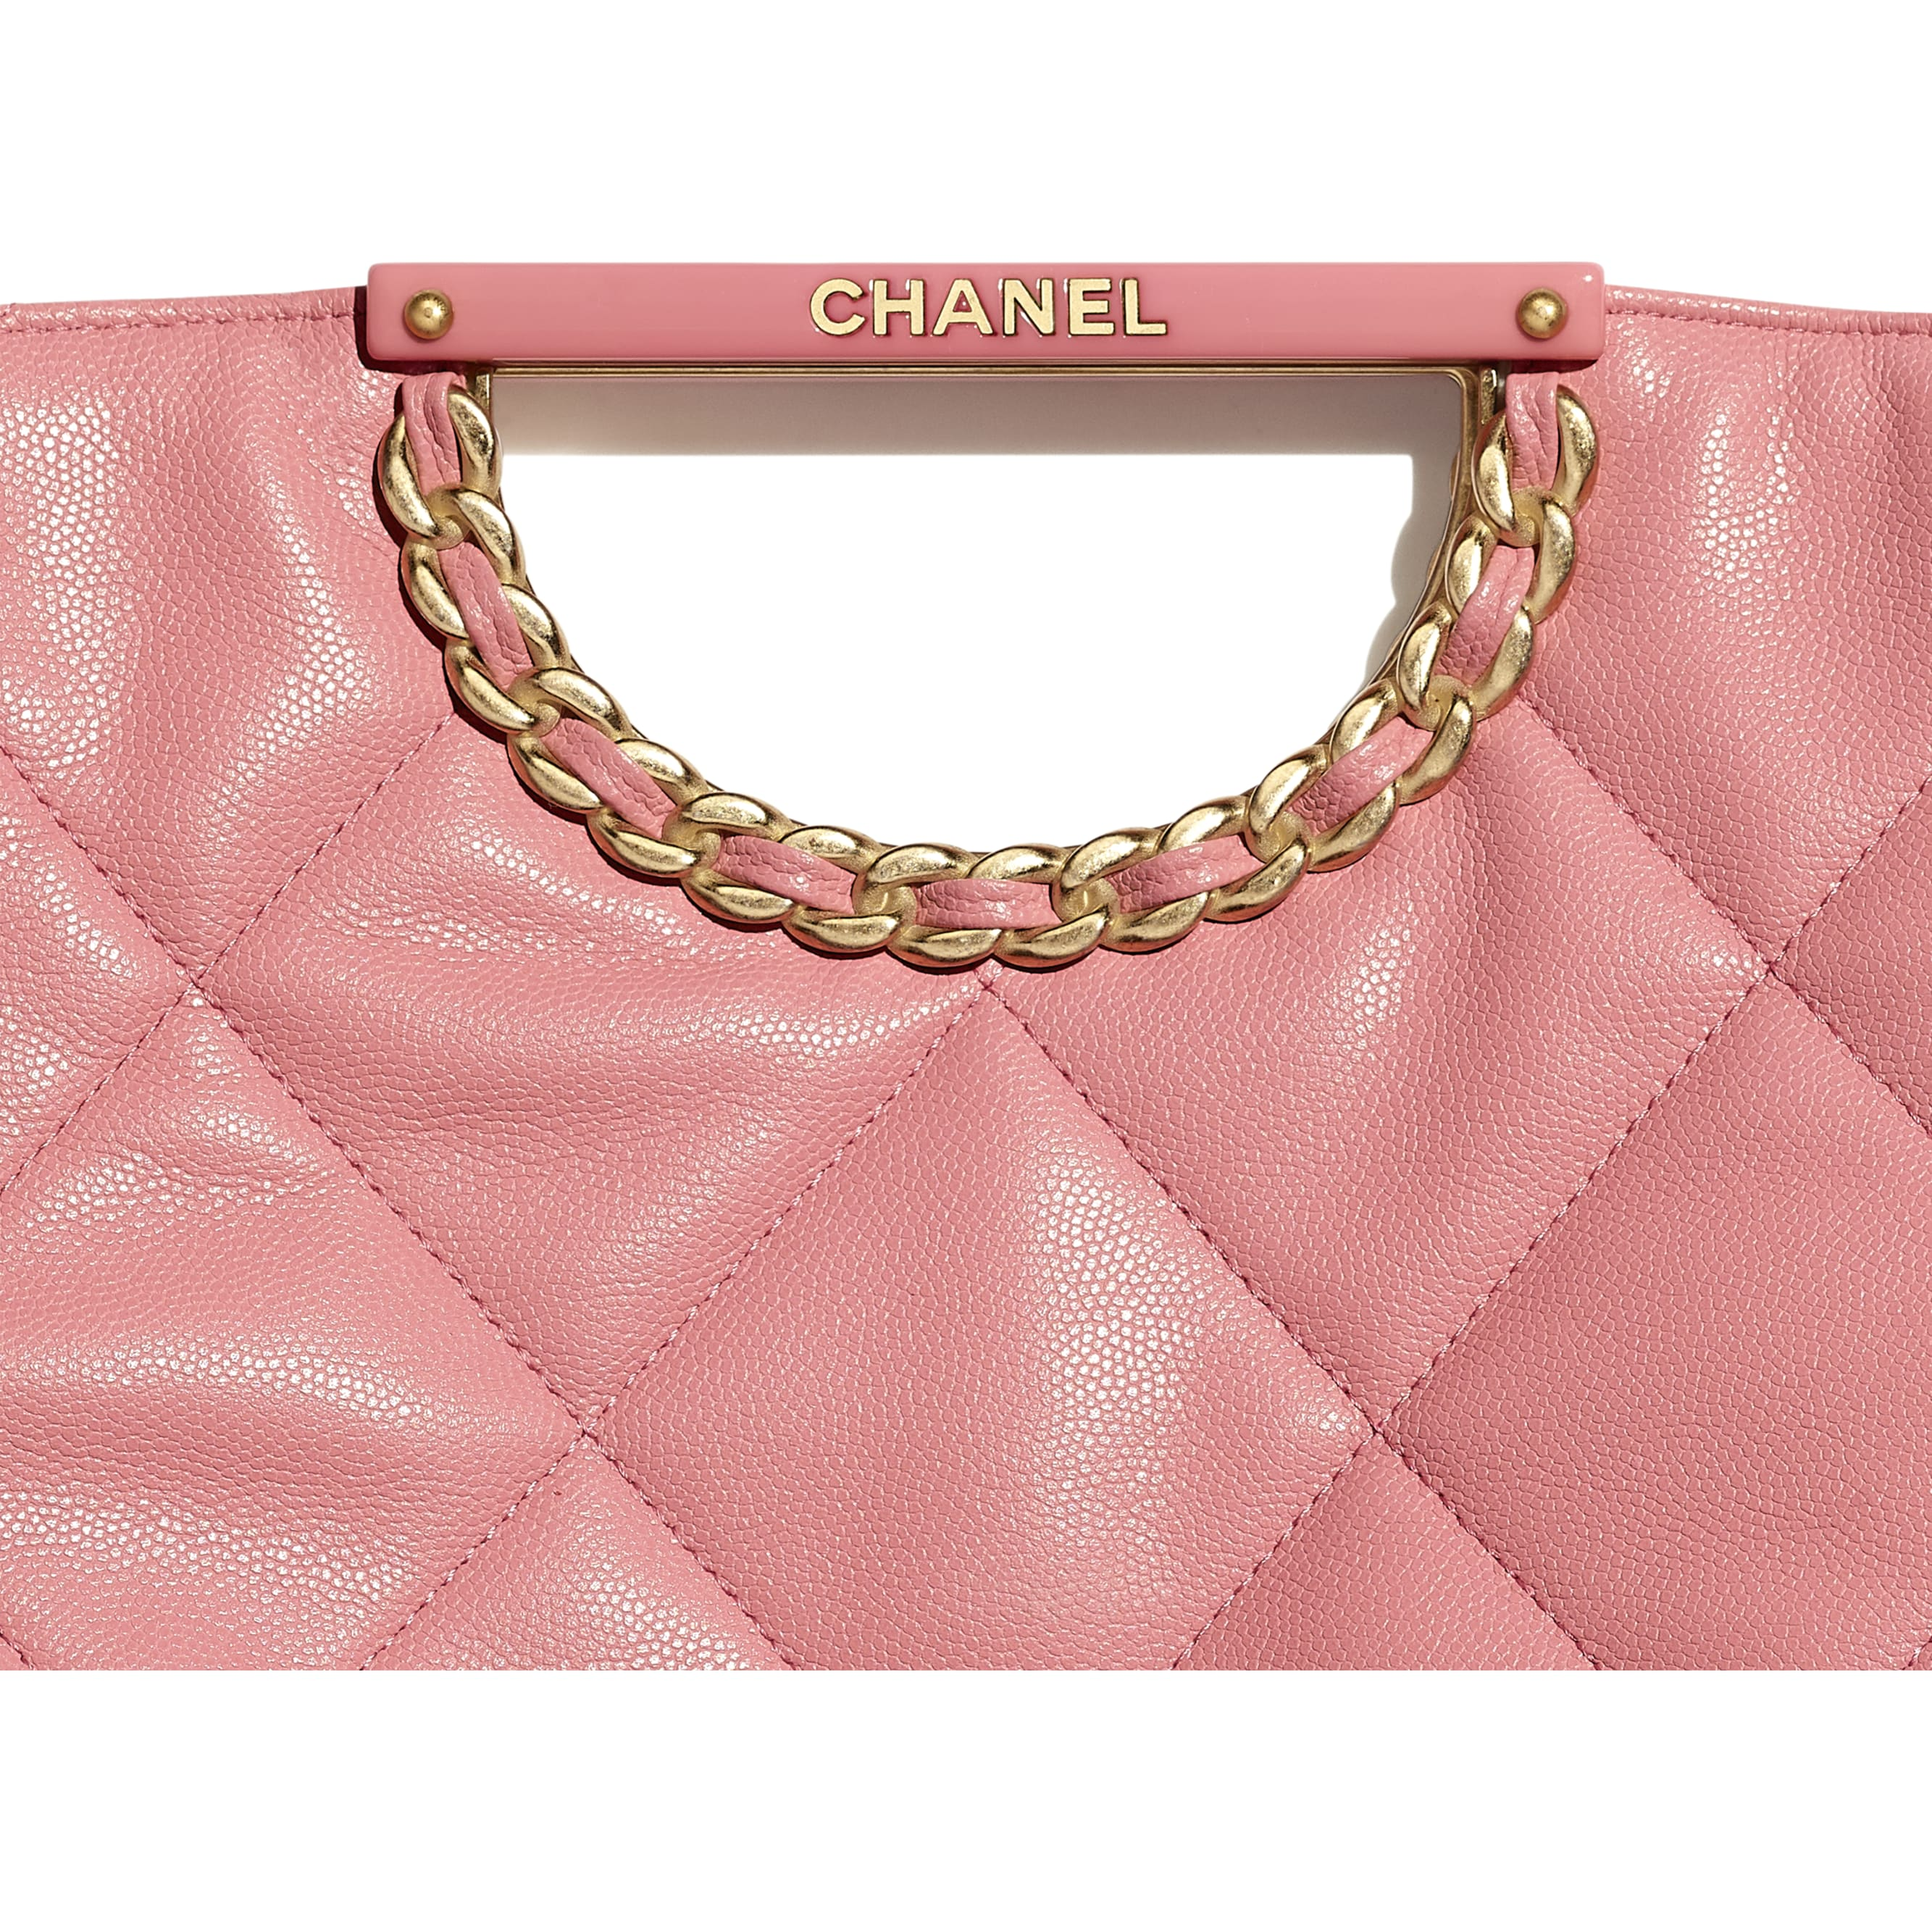 Clutch - Pink - Grained Calfskin & Gold-Tone Metal - Extra view - see standard sized version